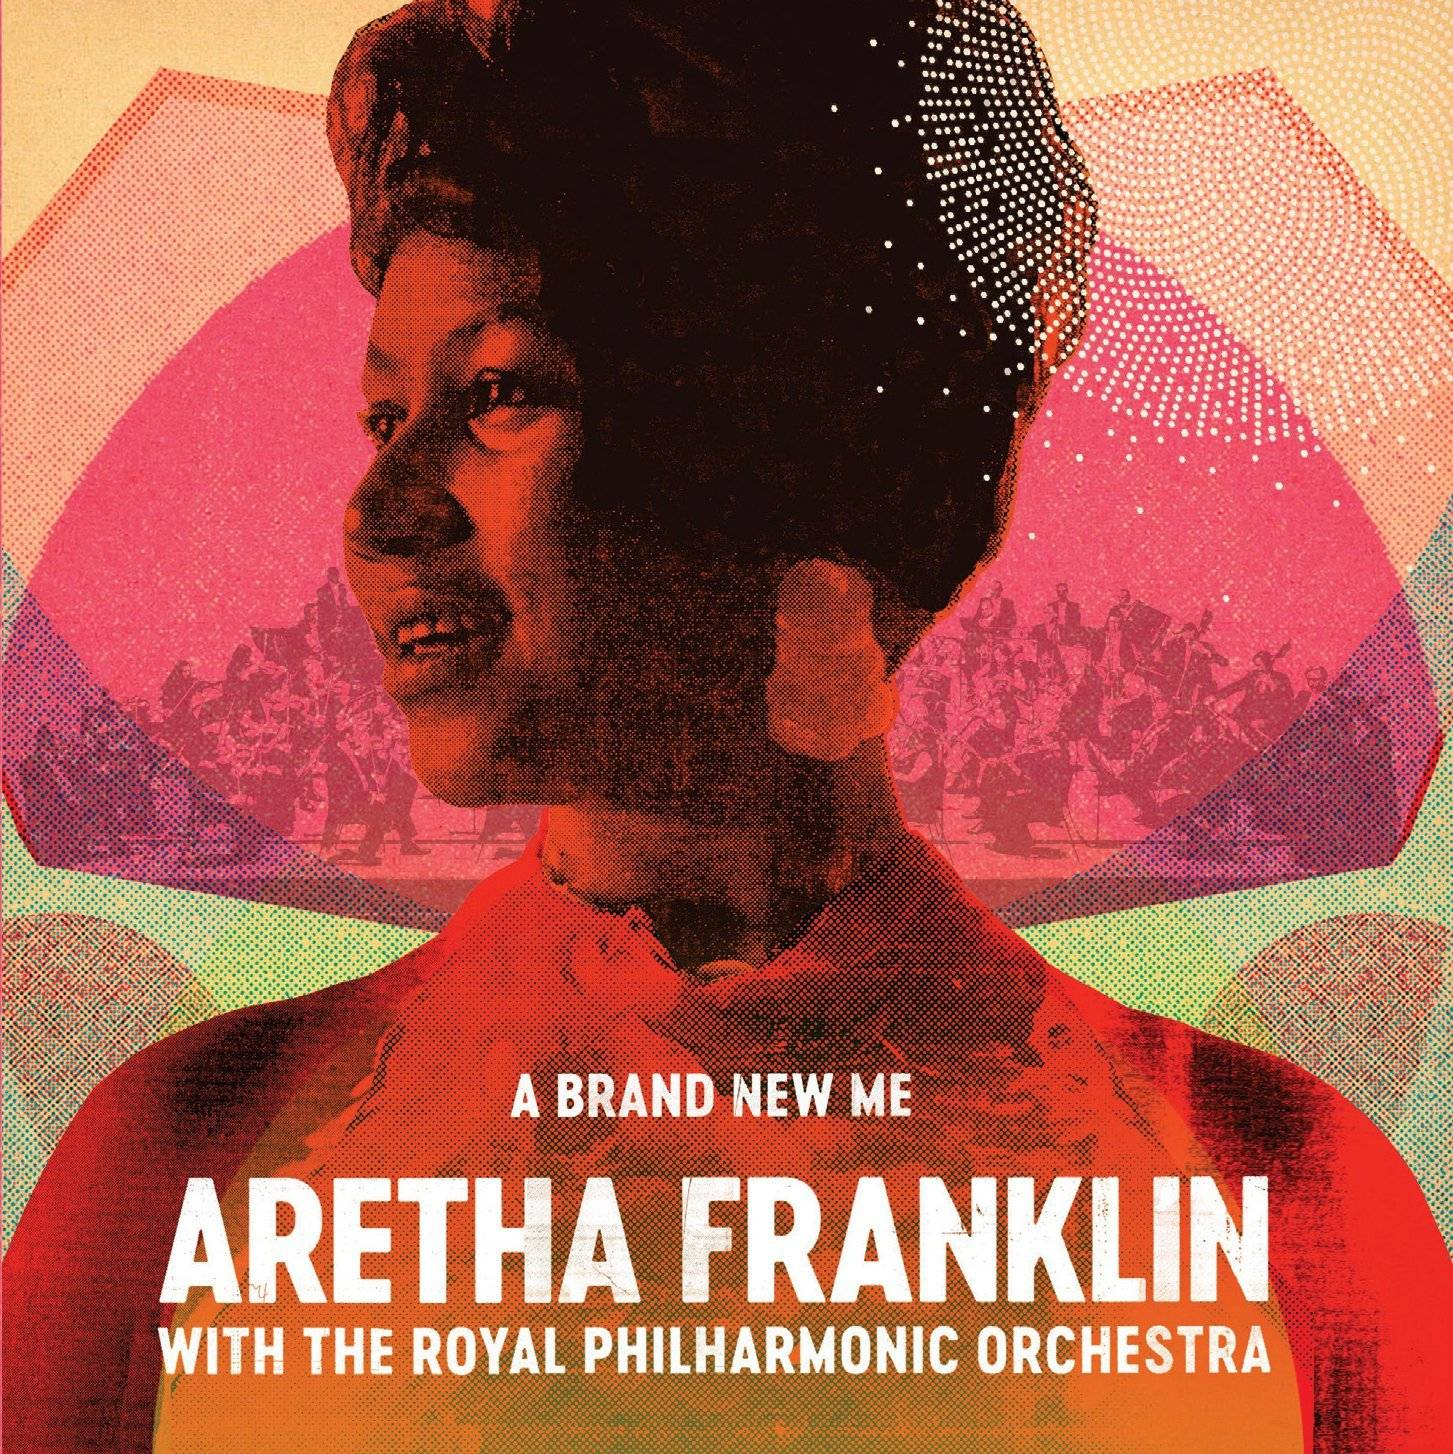 Aretha Franklin - A Brand New Me: Aretha Franklin (with The Royal Philharmonic Orchestra) (2017) [Official Digital Download]